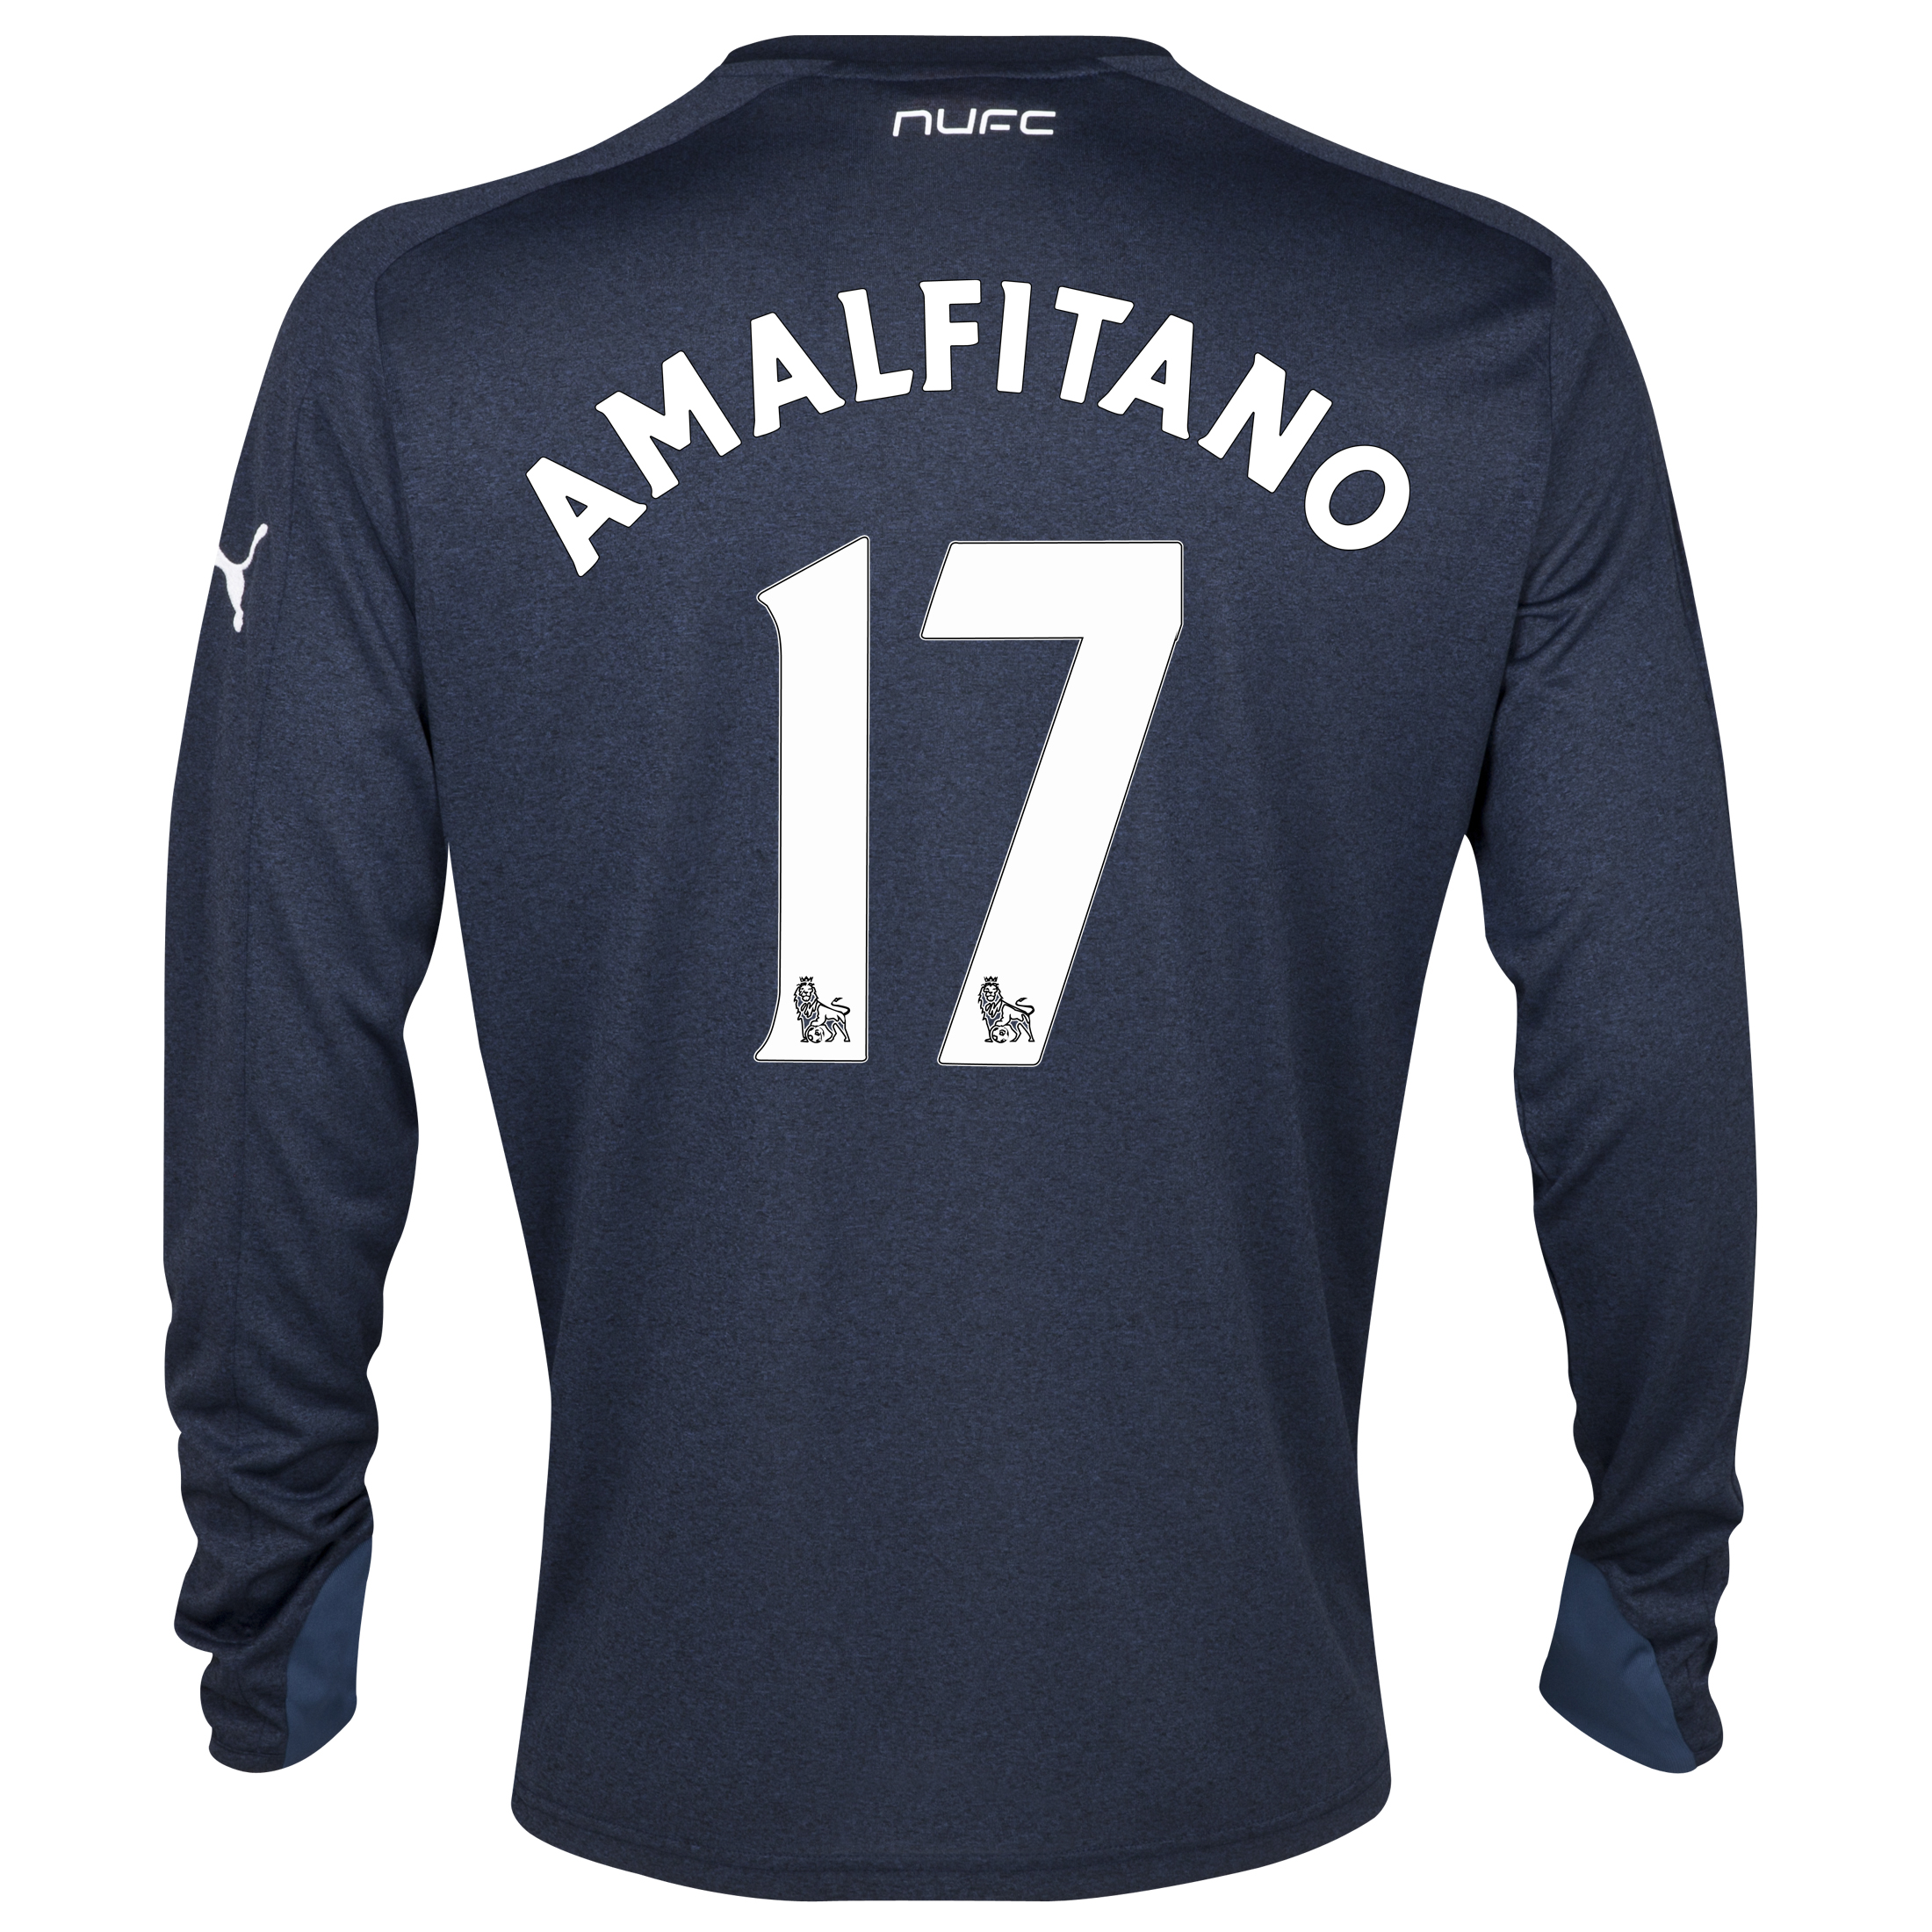 Newcastle United Away Shirt 2013/14- Long Sleeve with Amalfitano 17 printing